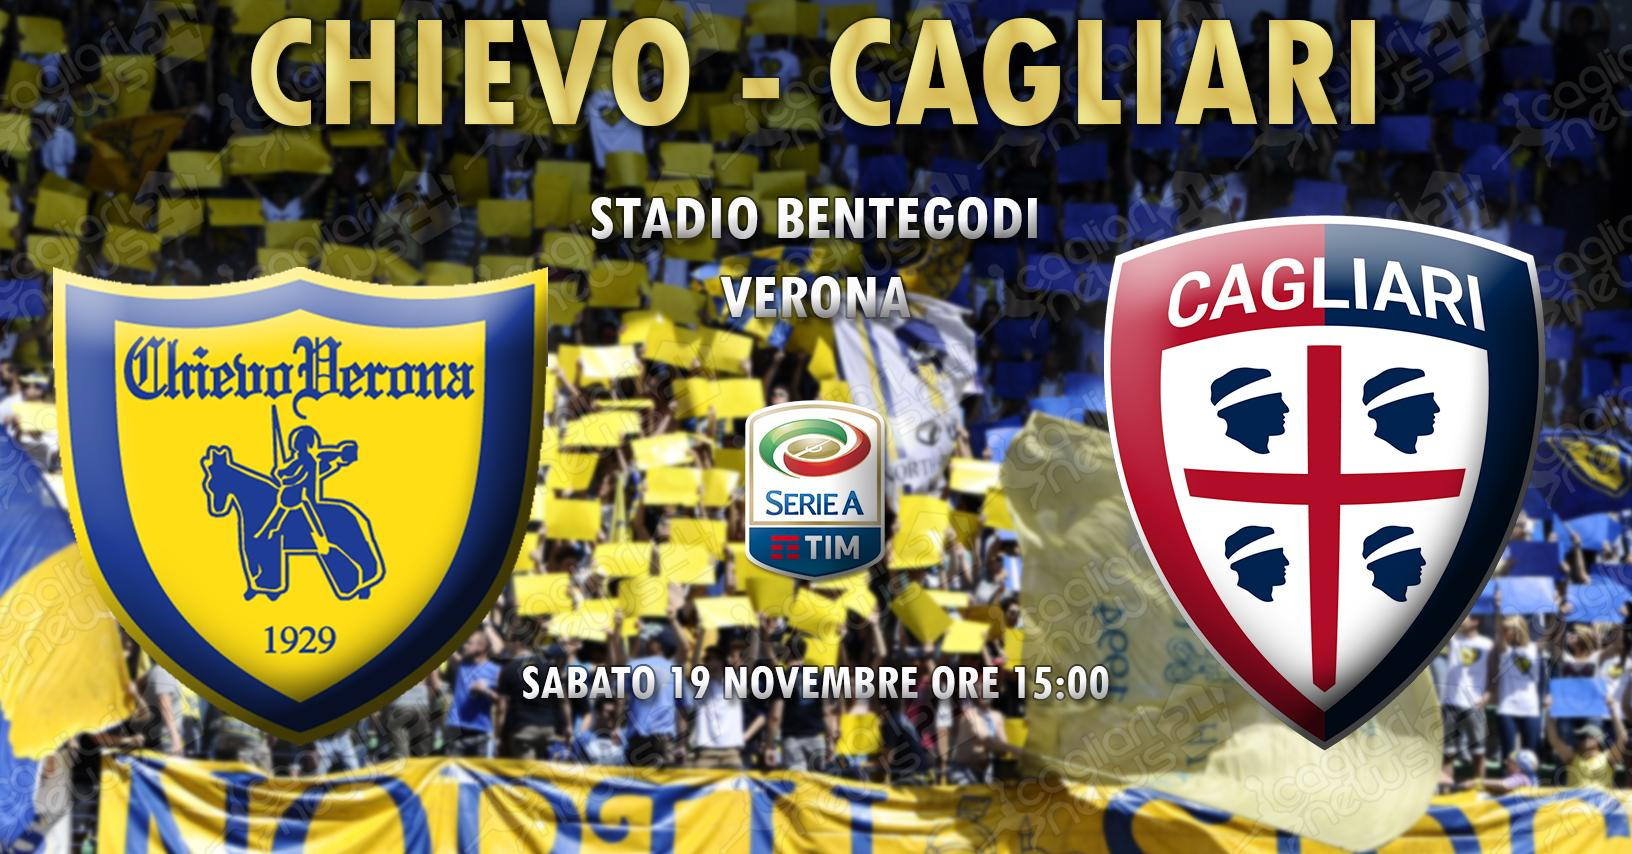 chievo cagliari - photo #35